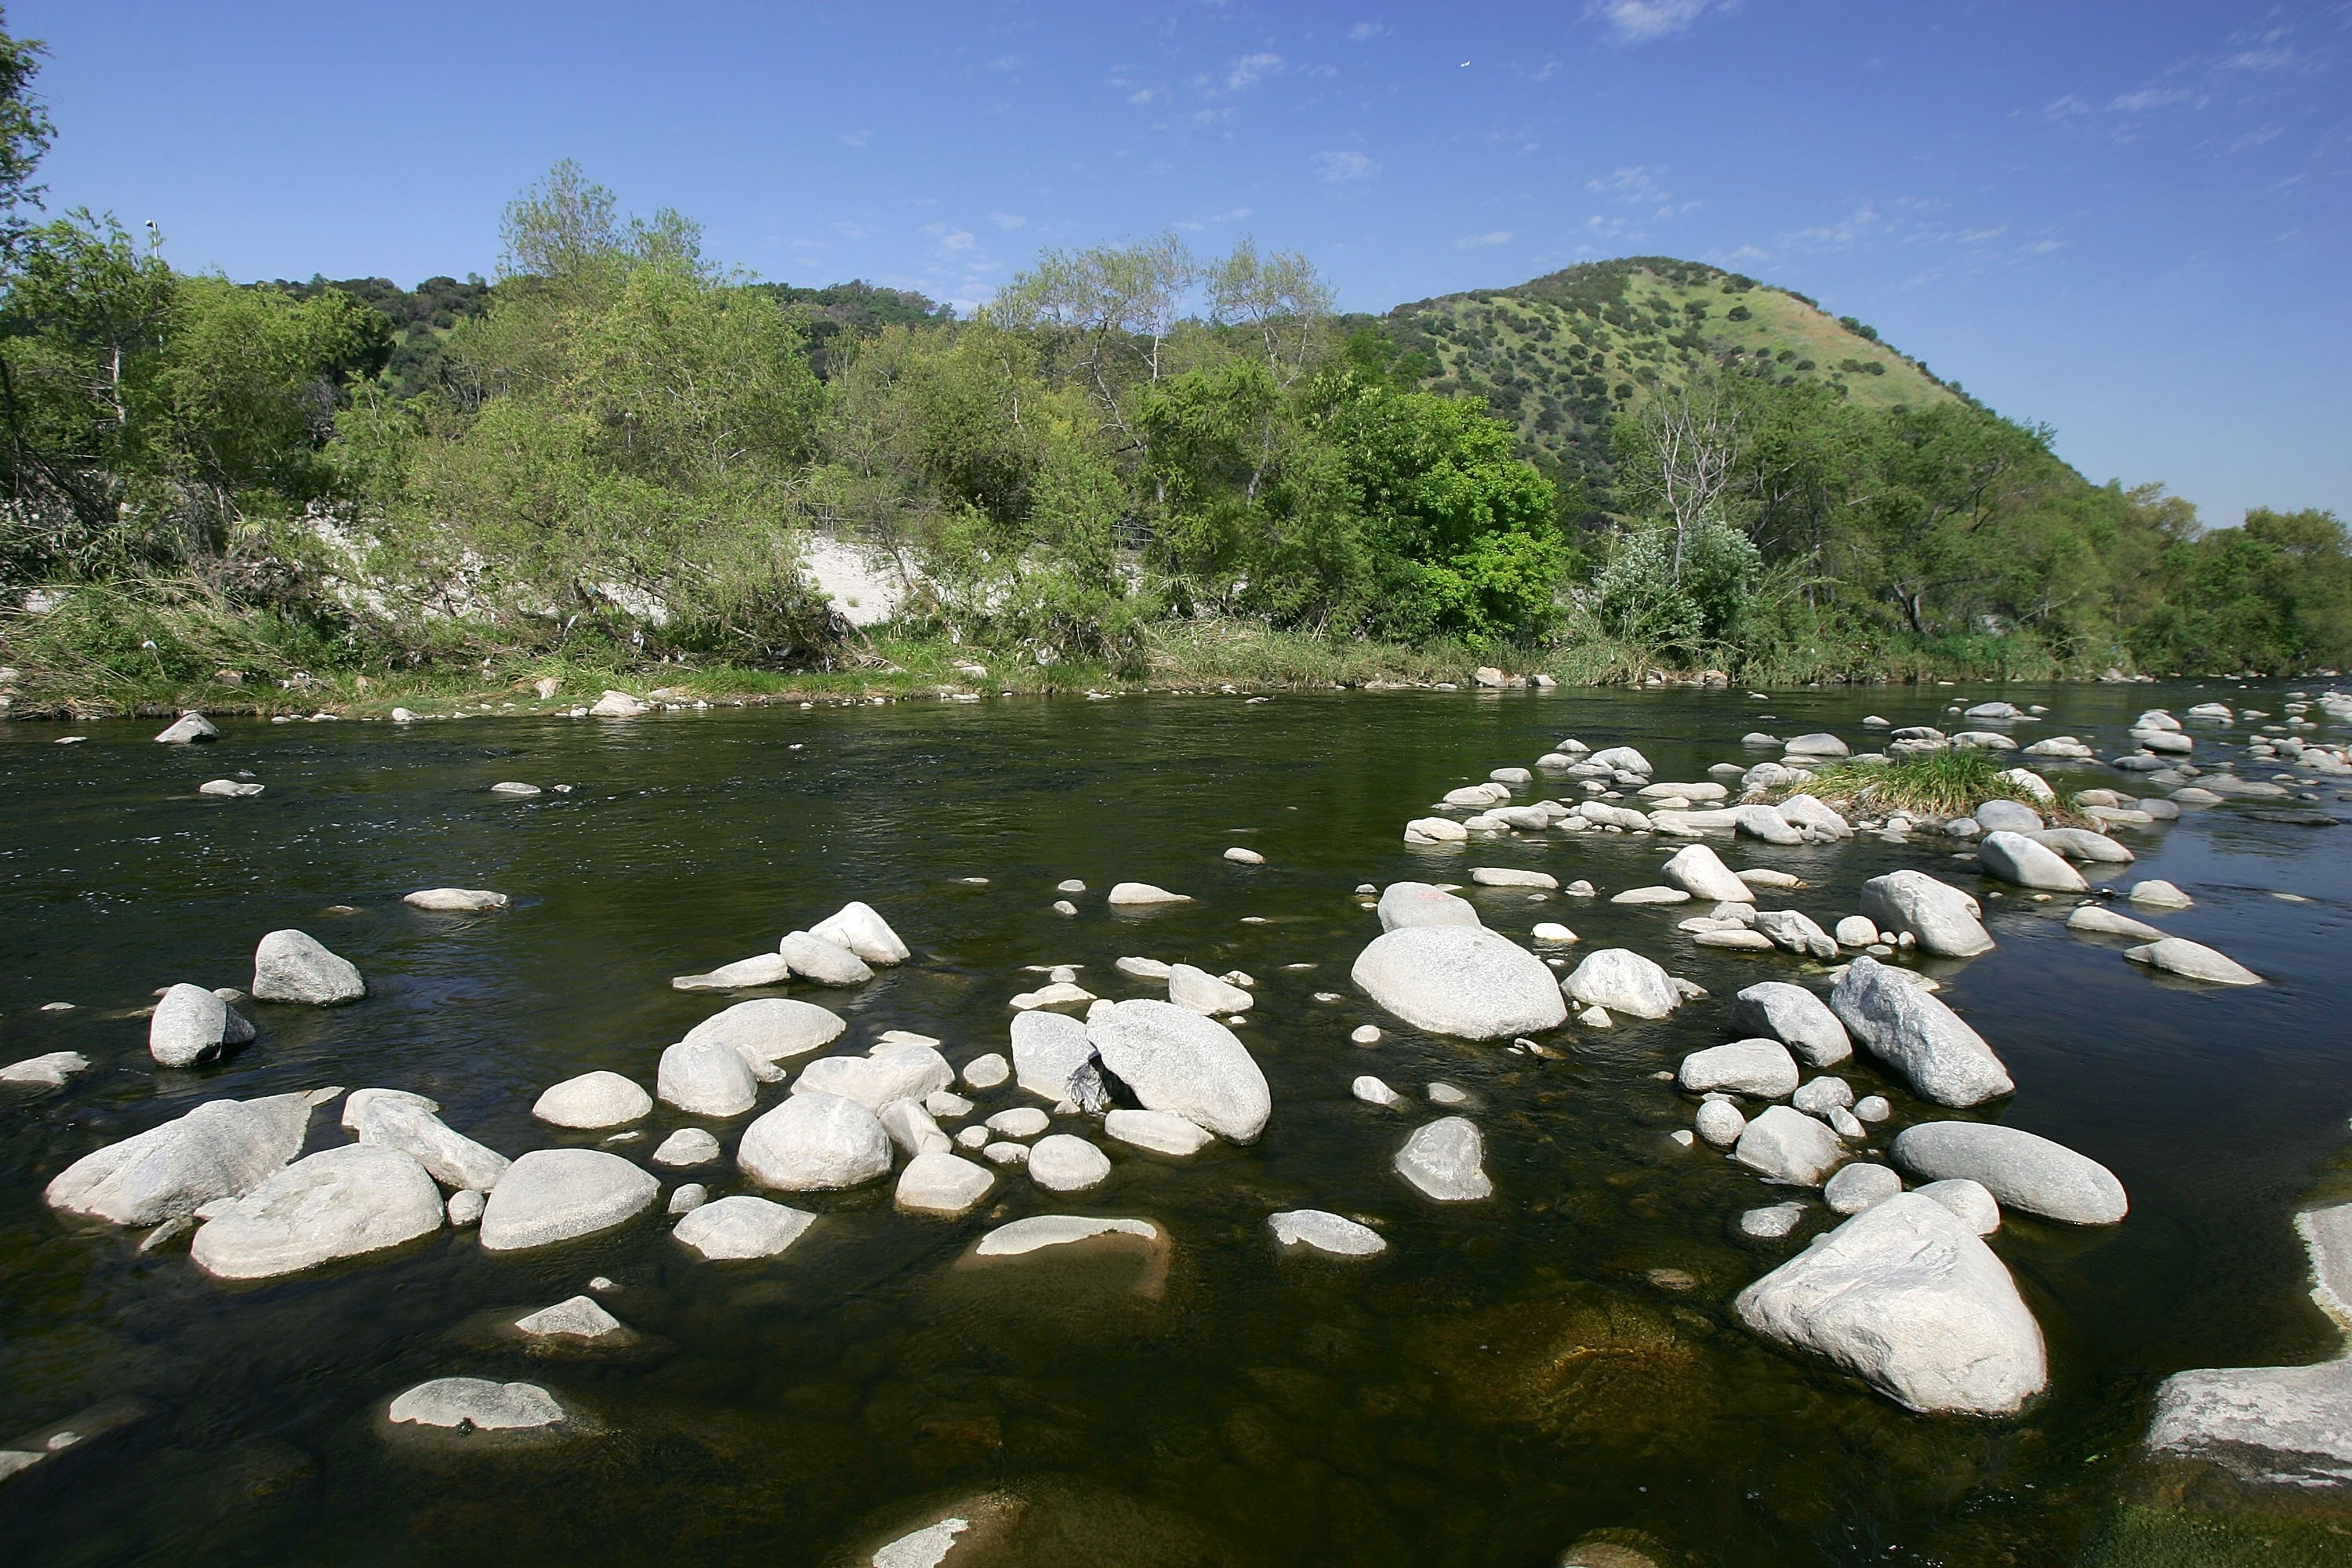 Rivers near claremont ca usa today for Lake fishing near los angeles